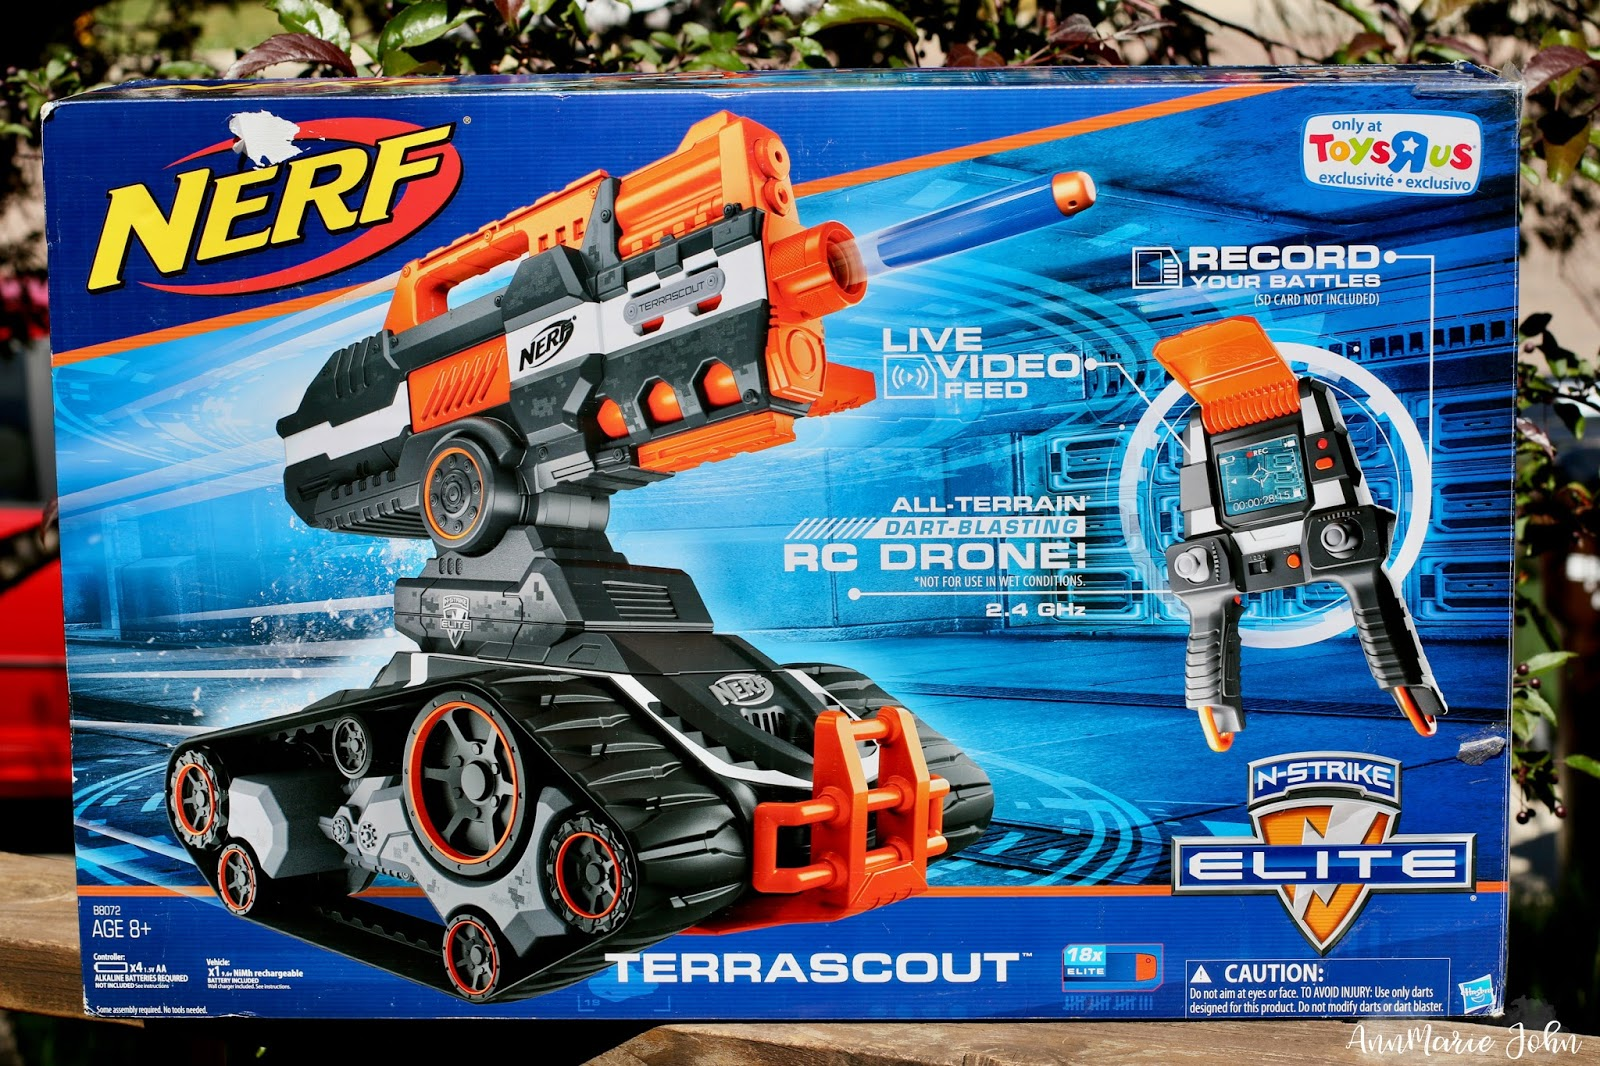 Toys R Us Nerf Guns : Summer fun in the sun with nerf blasters toysrus